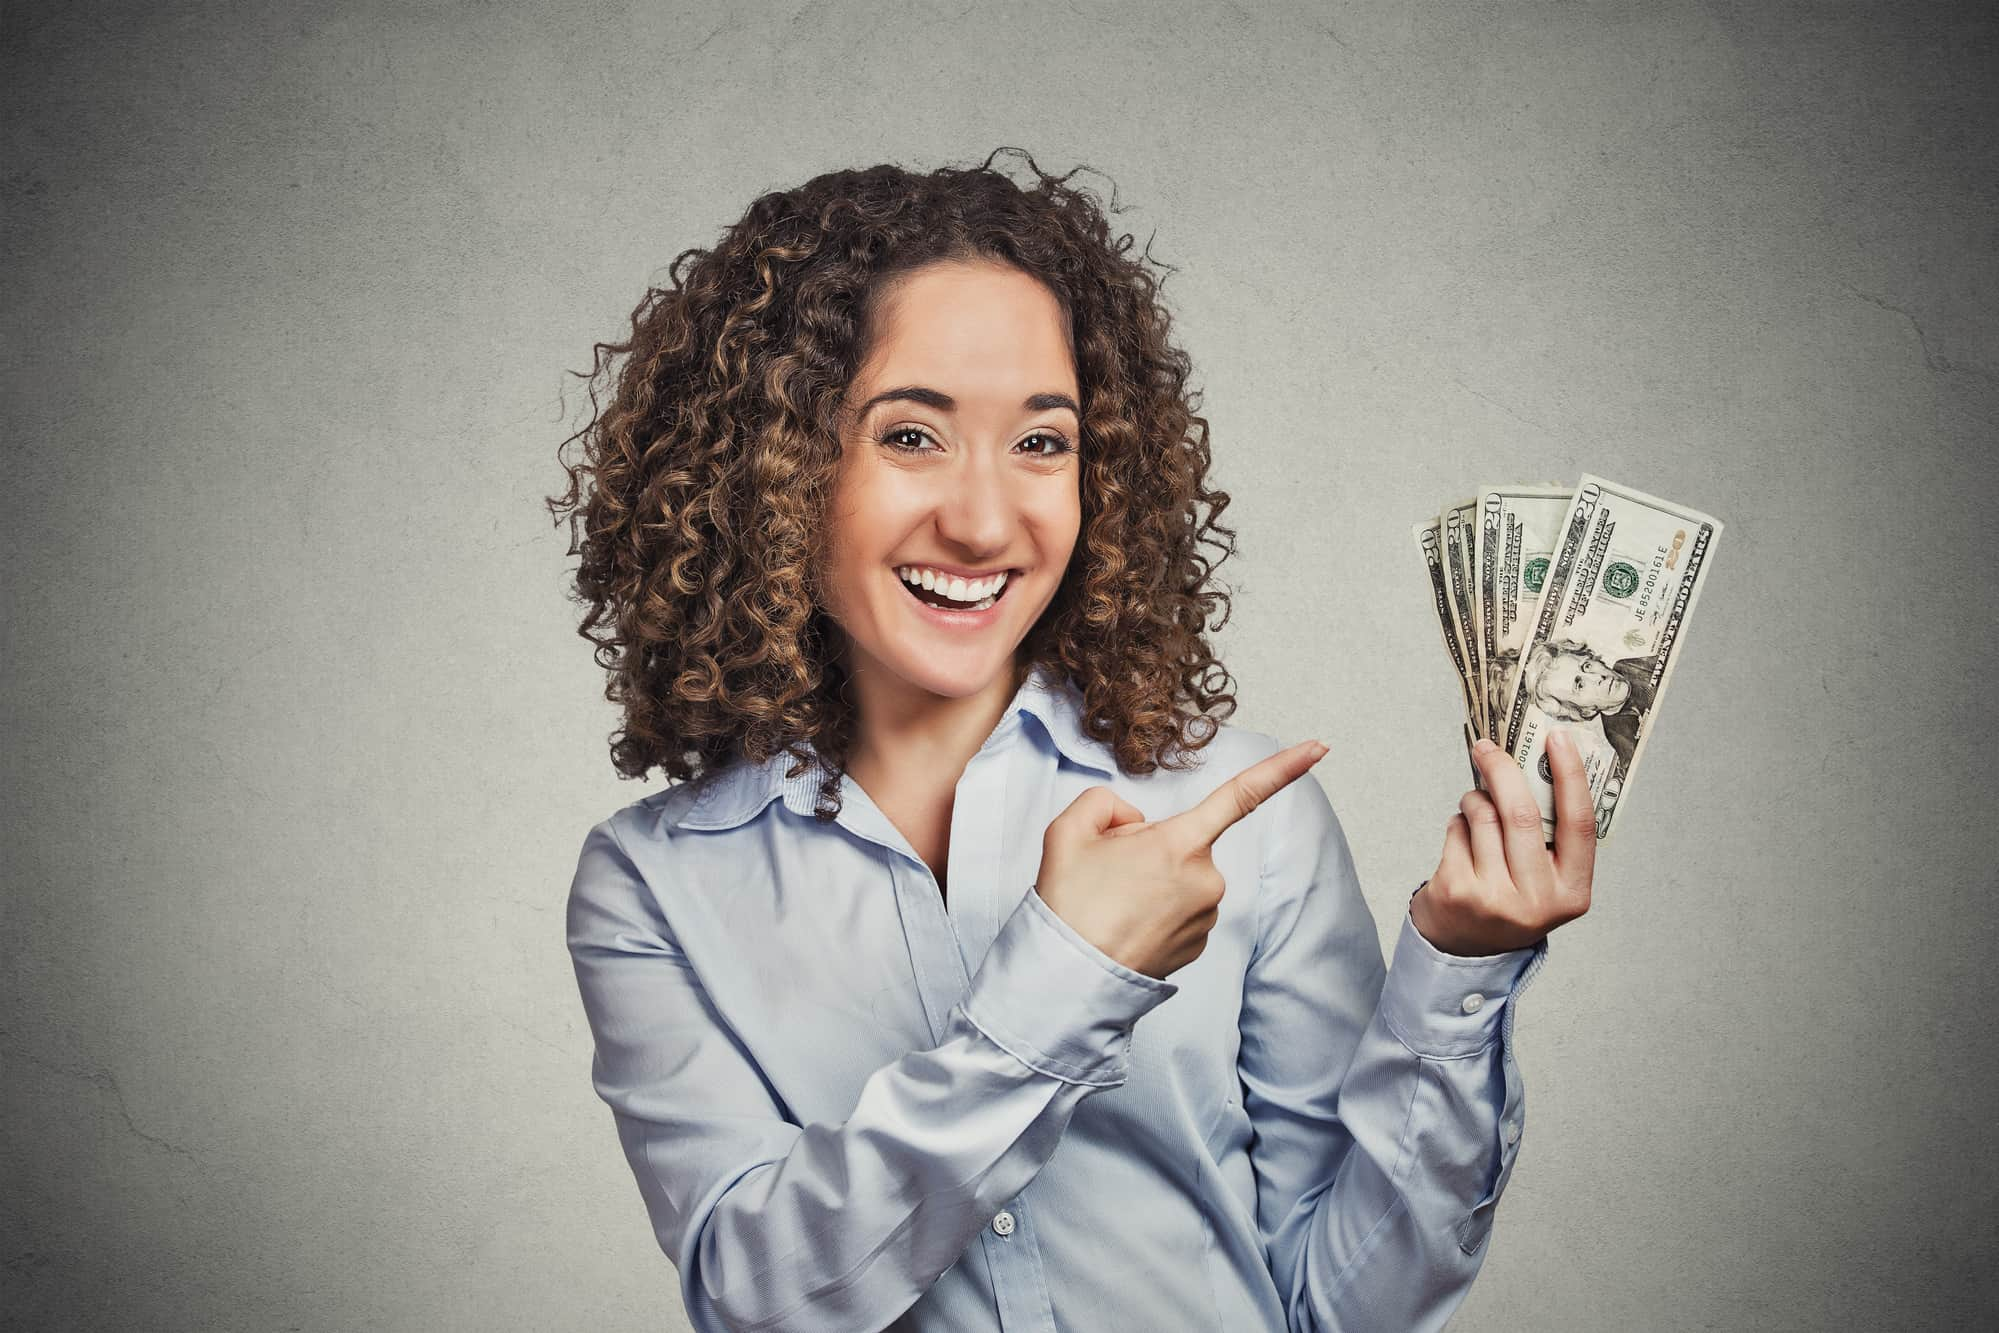 A happy woman holding money